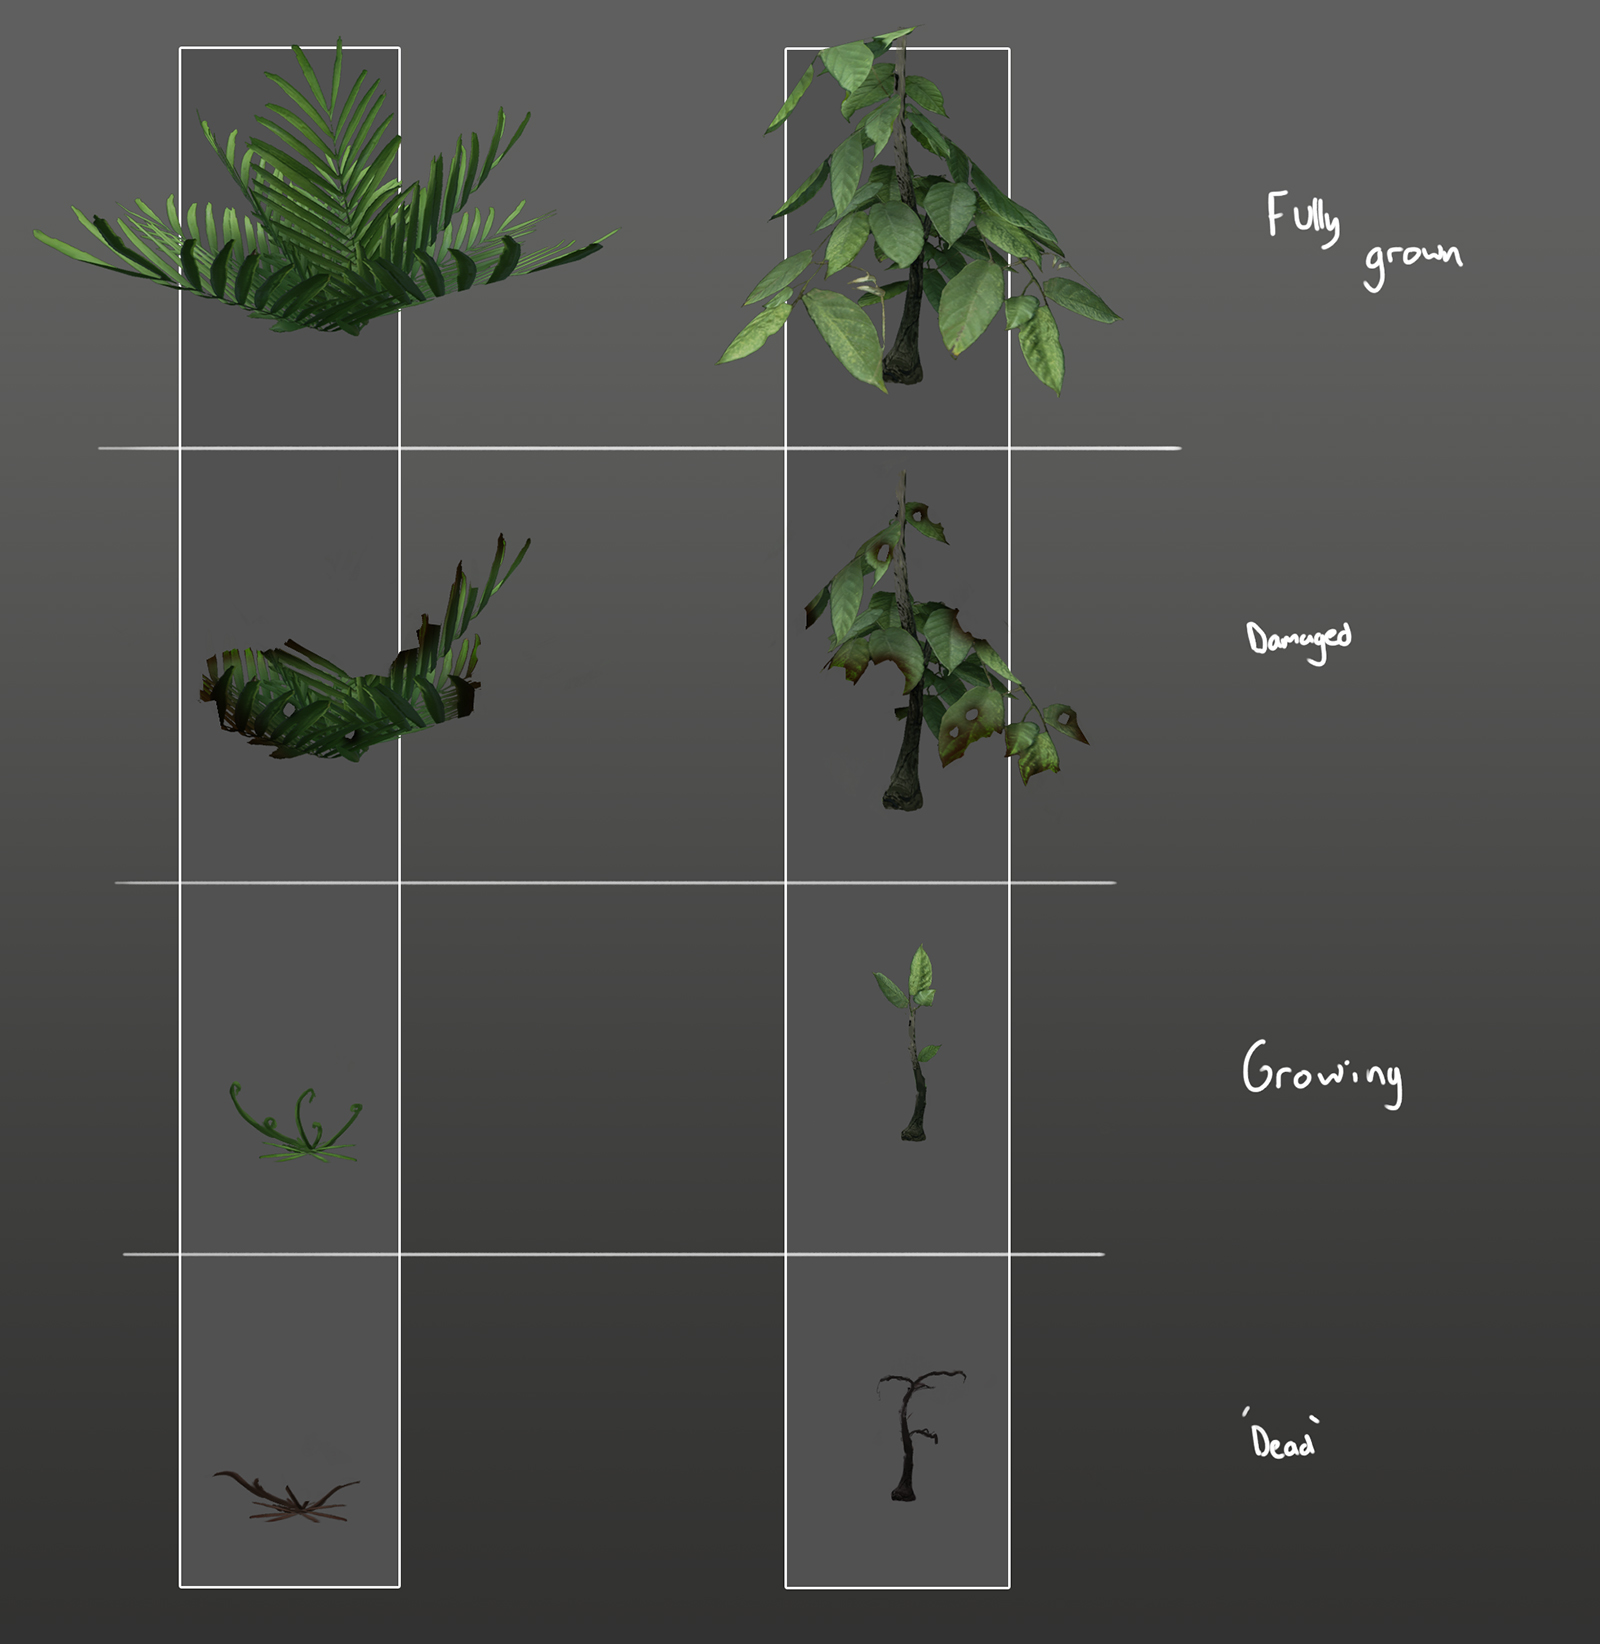 eden star shrubs concept damaged states